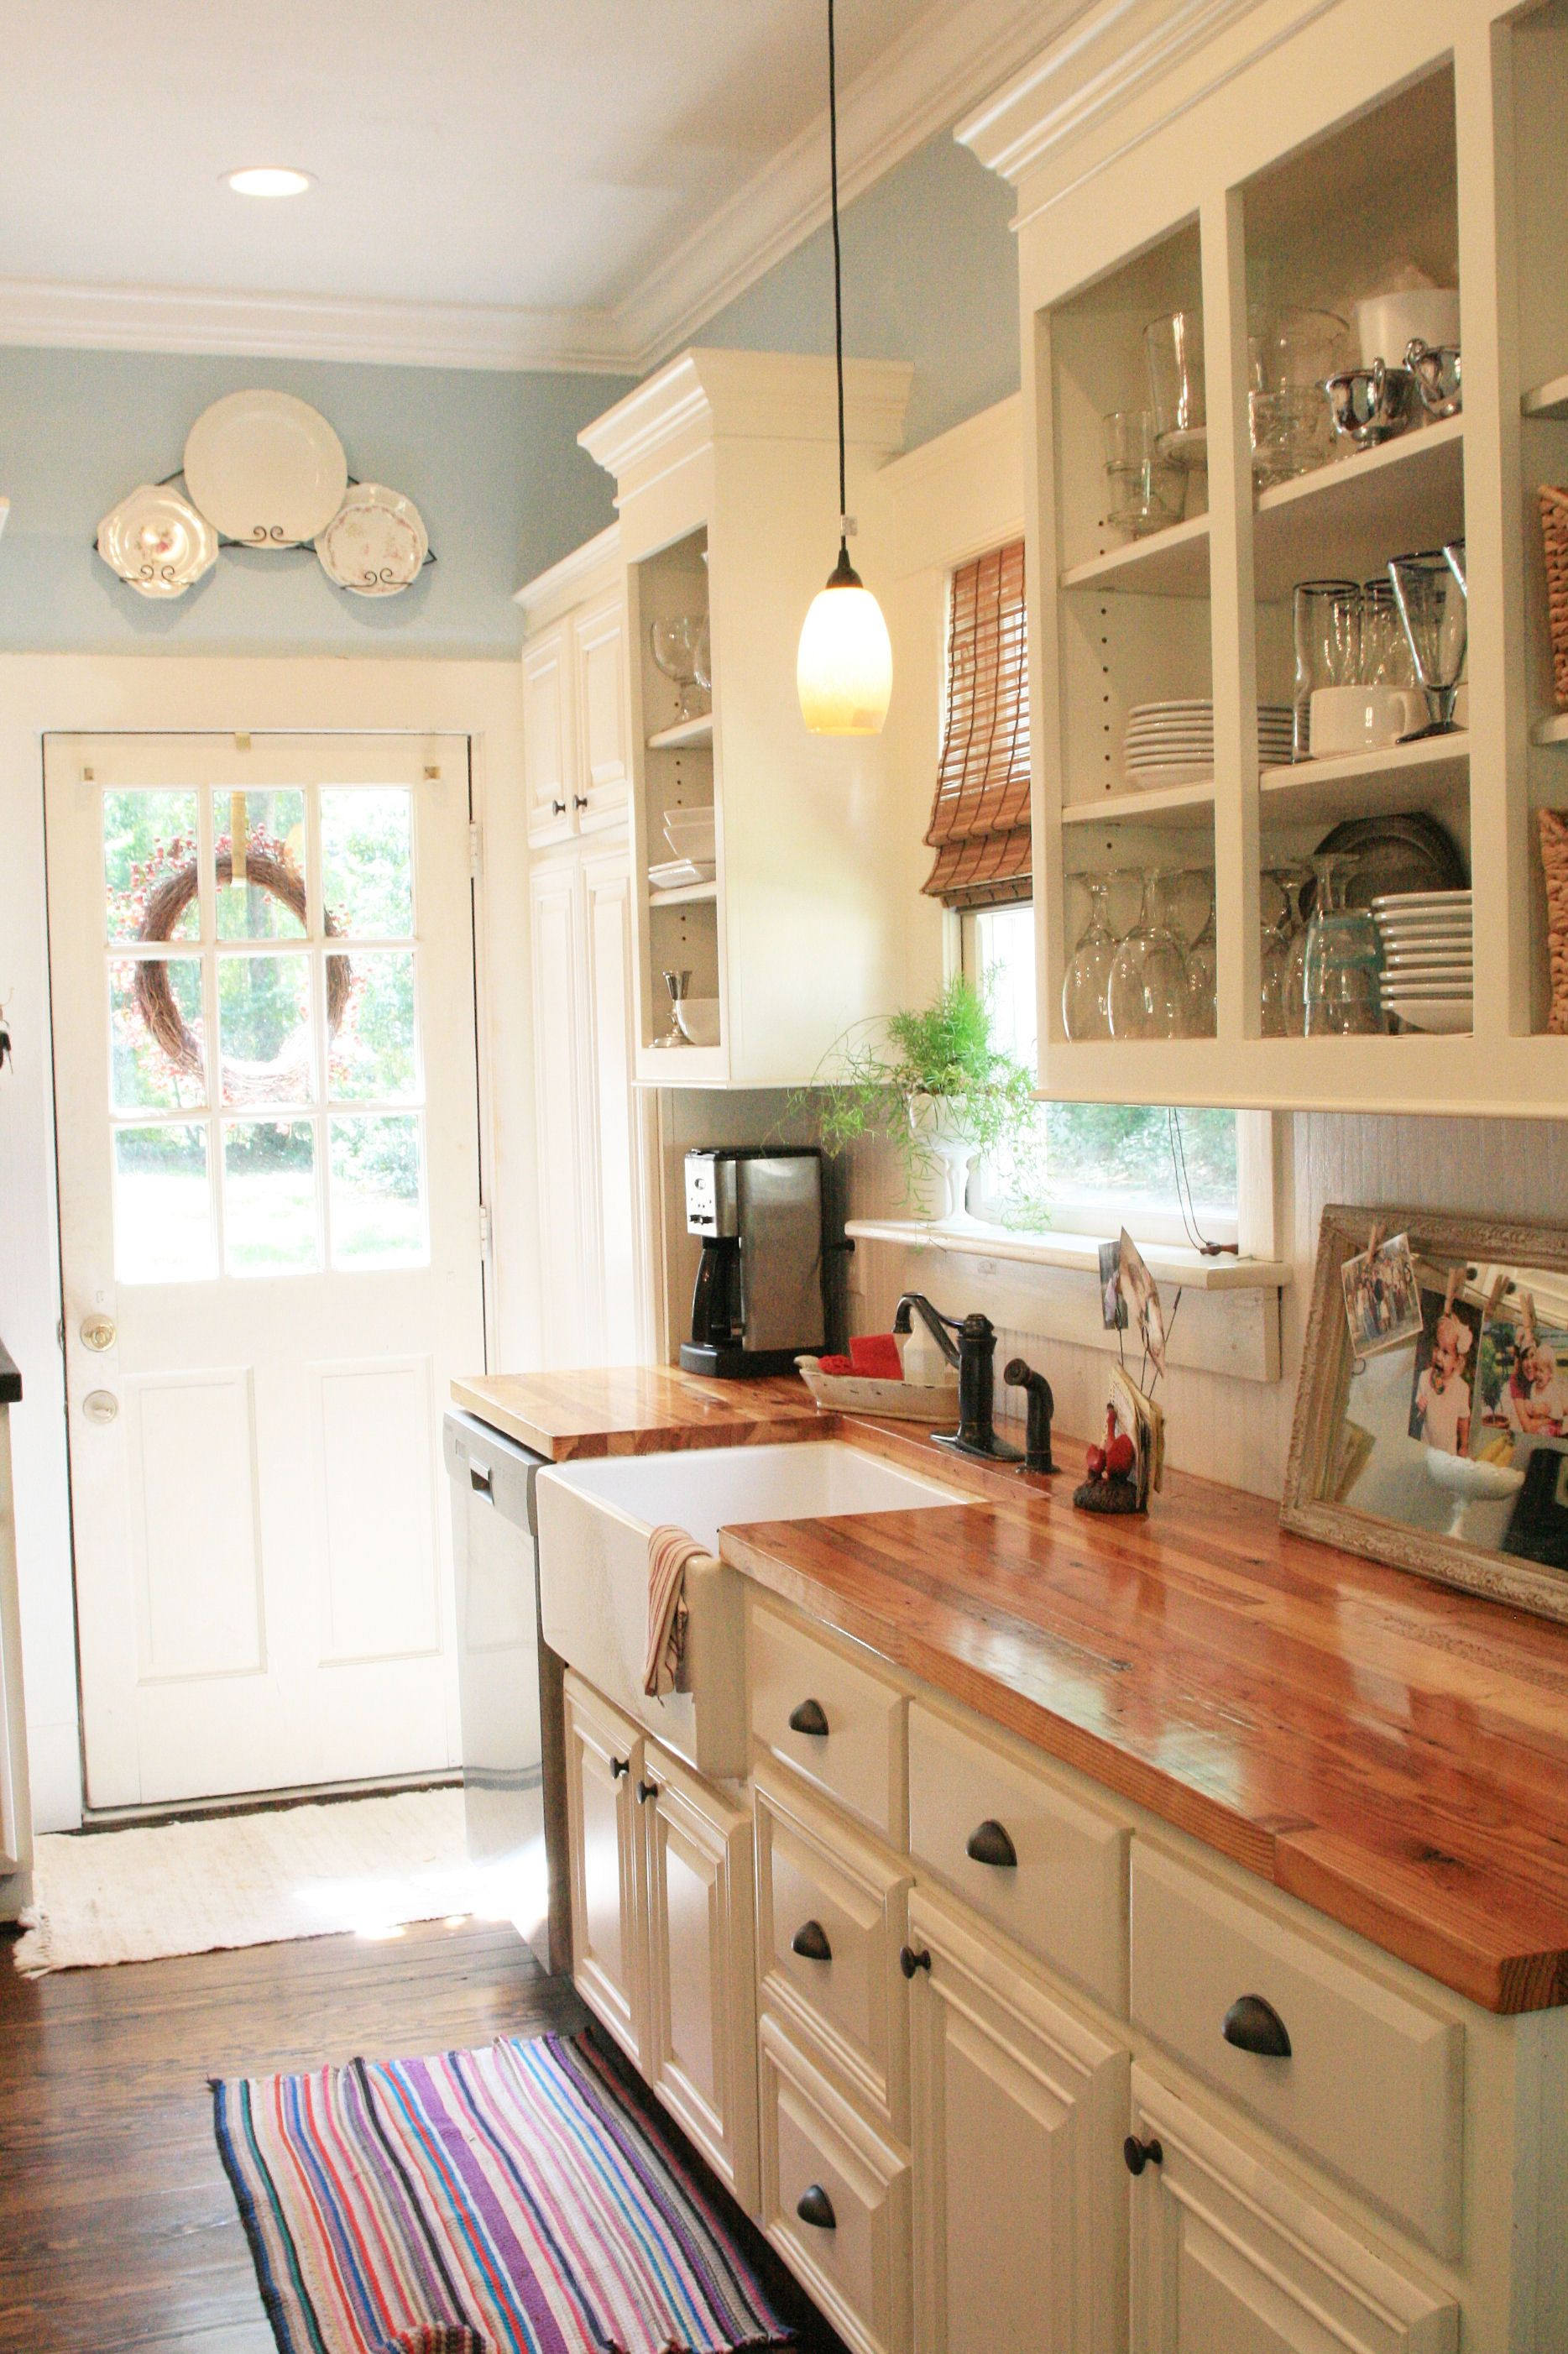 White Country Kitchen With Butcher Block 23 rustic country kitchen design ideas to jump start your next